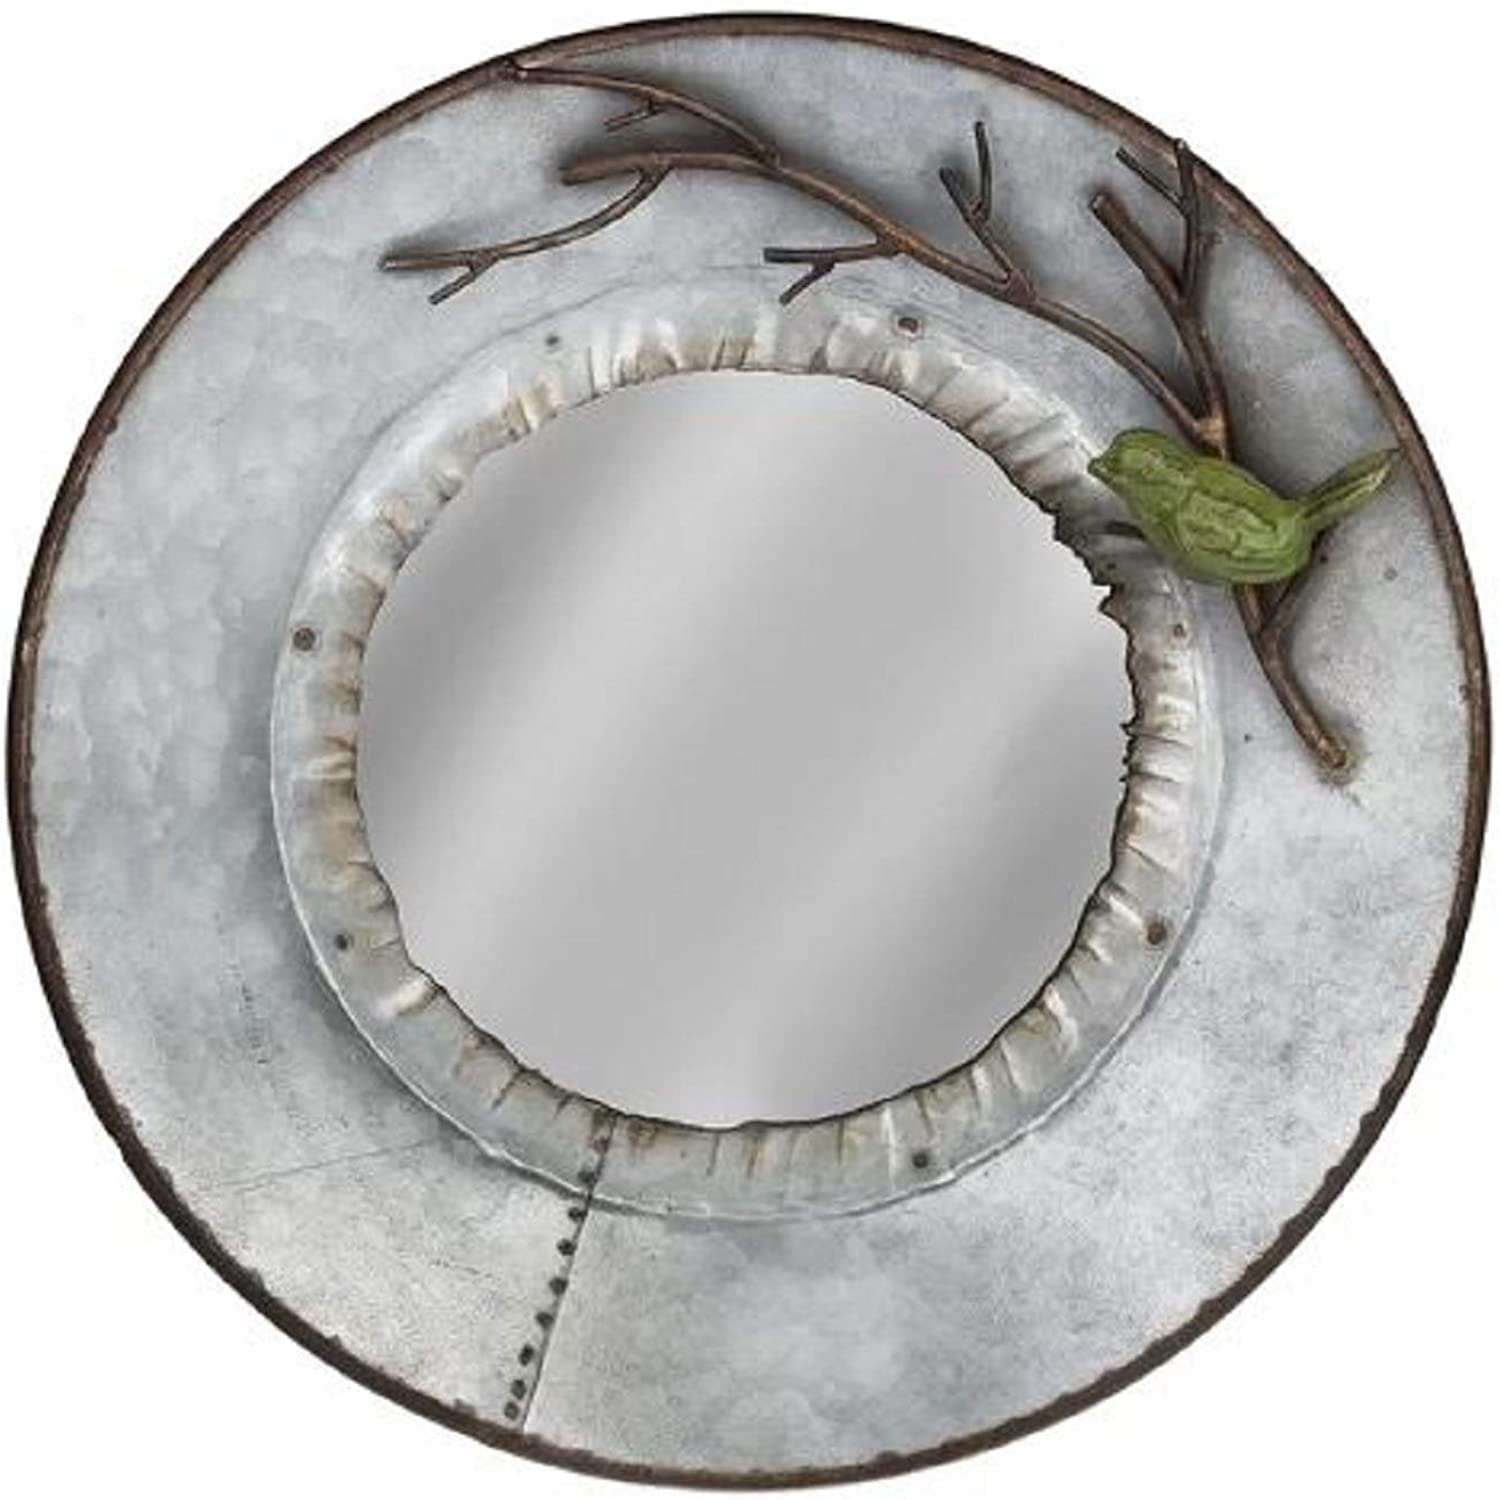 House Decoration Modern Accent Mirror. Round Annabell House Decoration Modern Accent Mirror Framed Metal Wall Mounted Grey